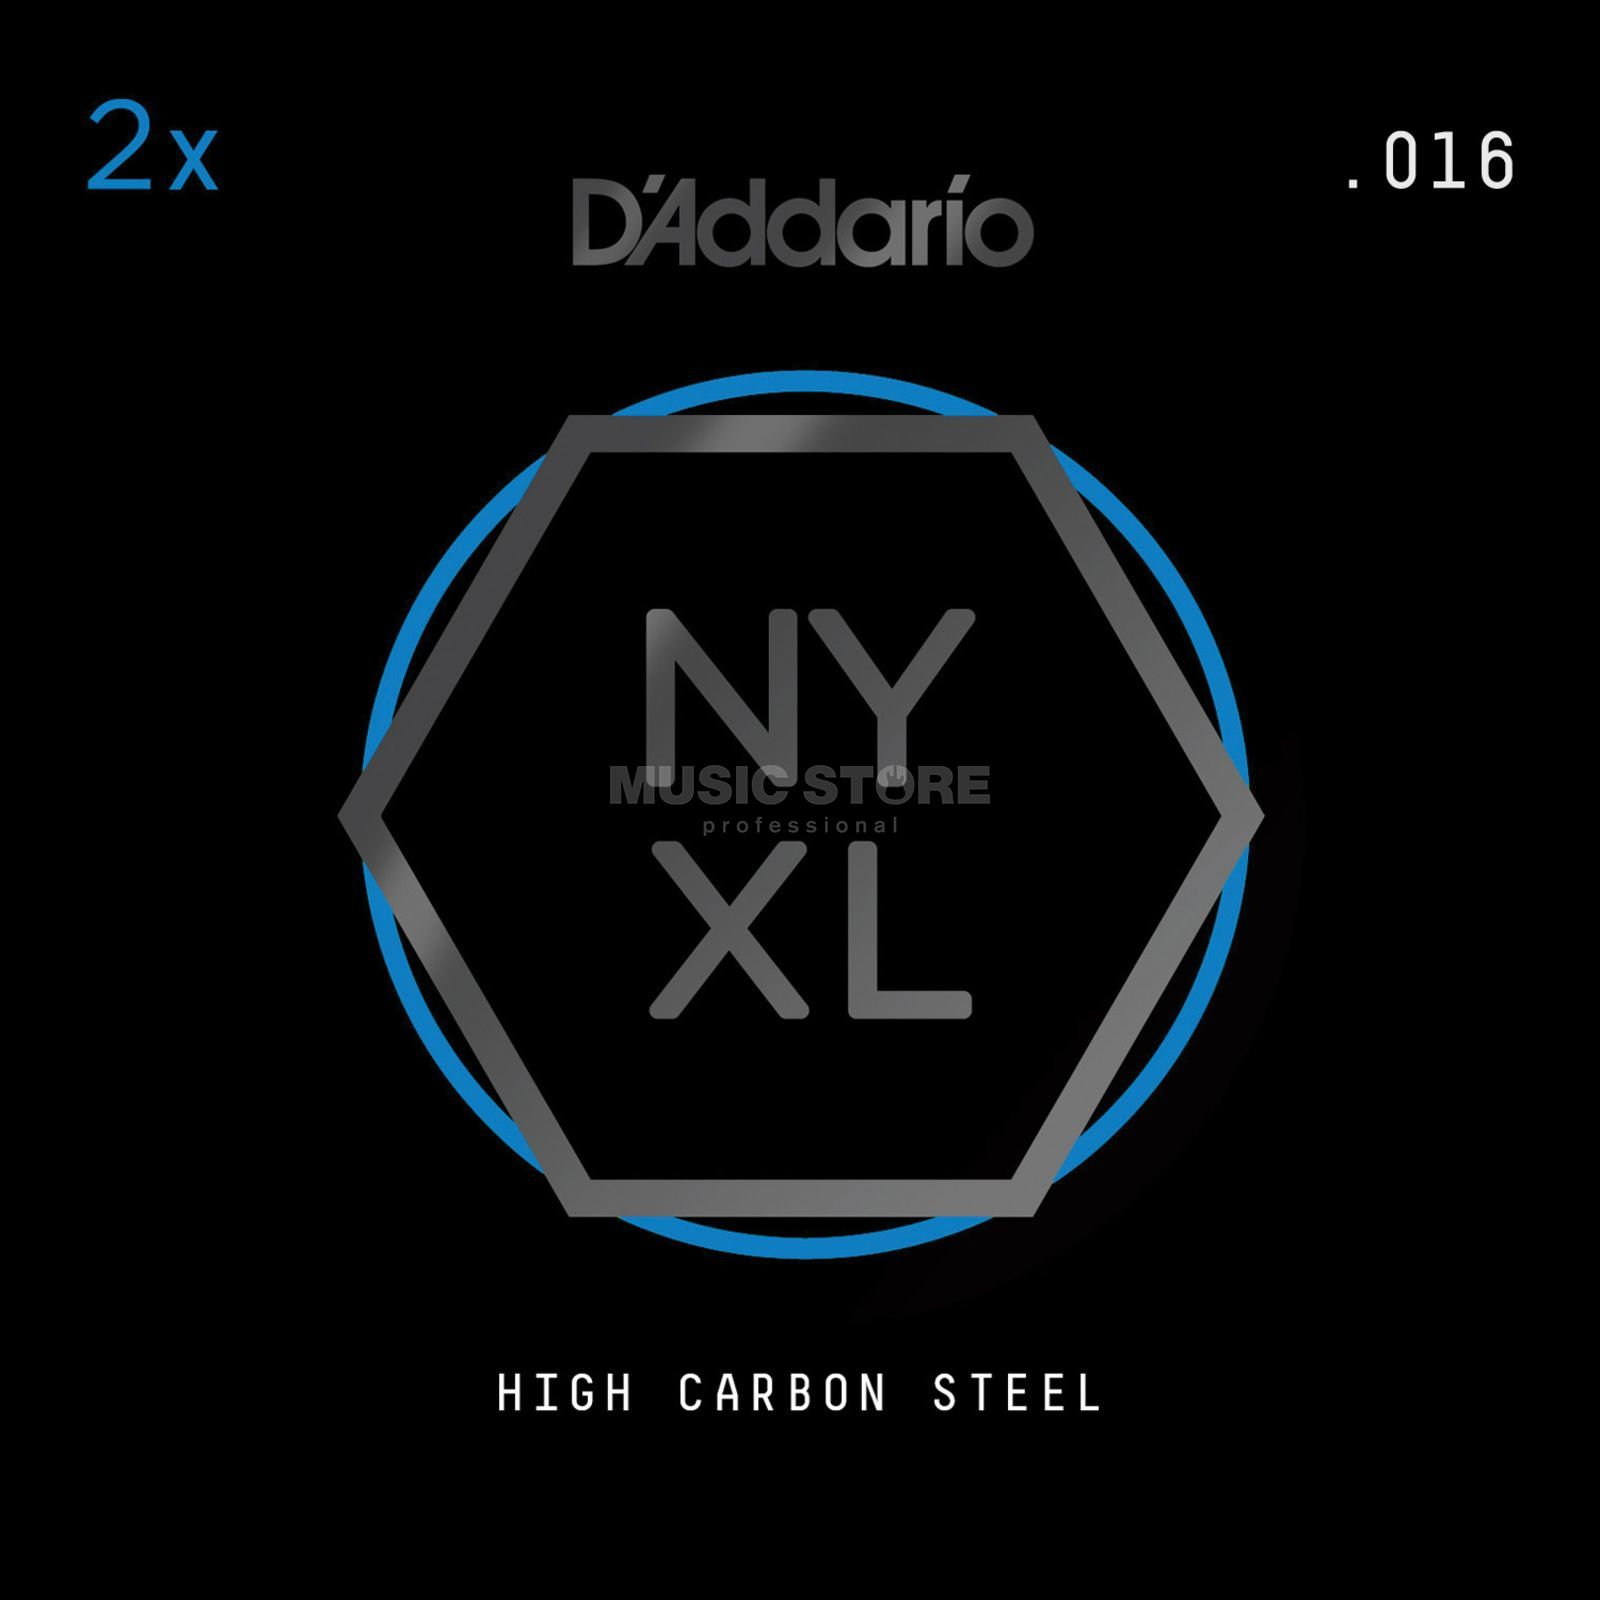 D'Addario NYPL016 Plain Single String 2-Pack - High Carbon Steel Image du produit